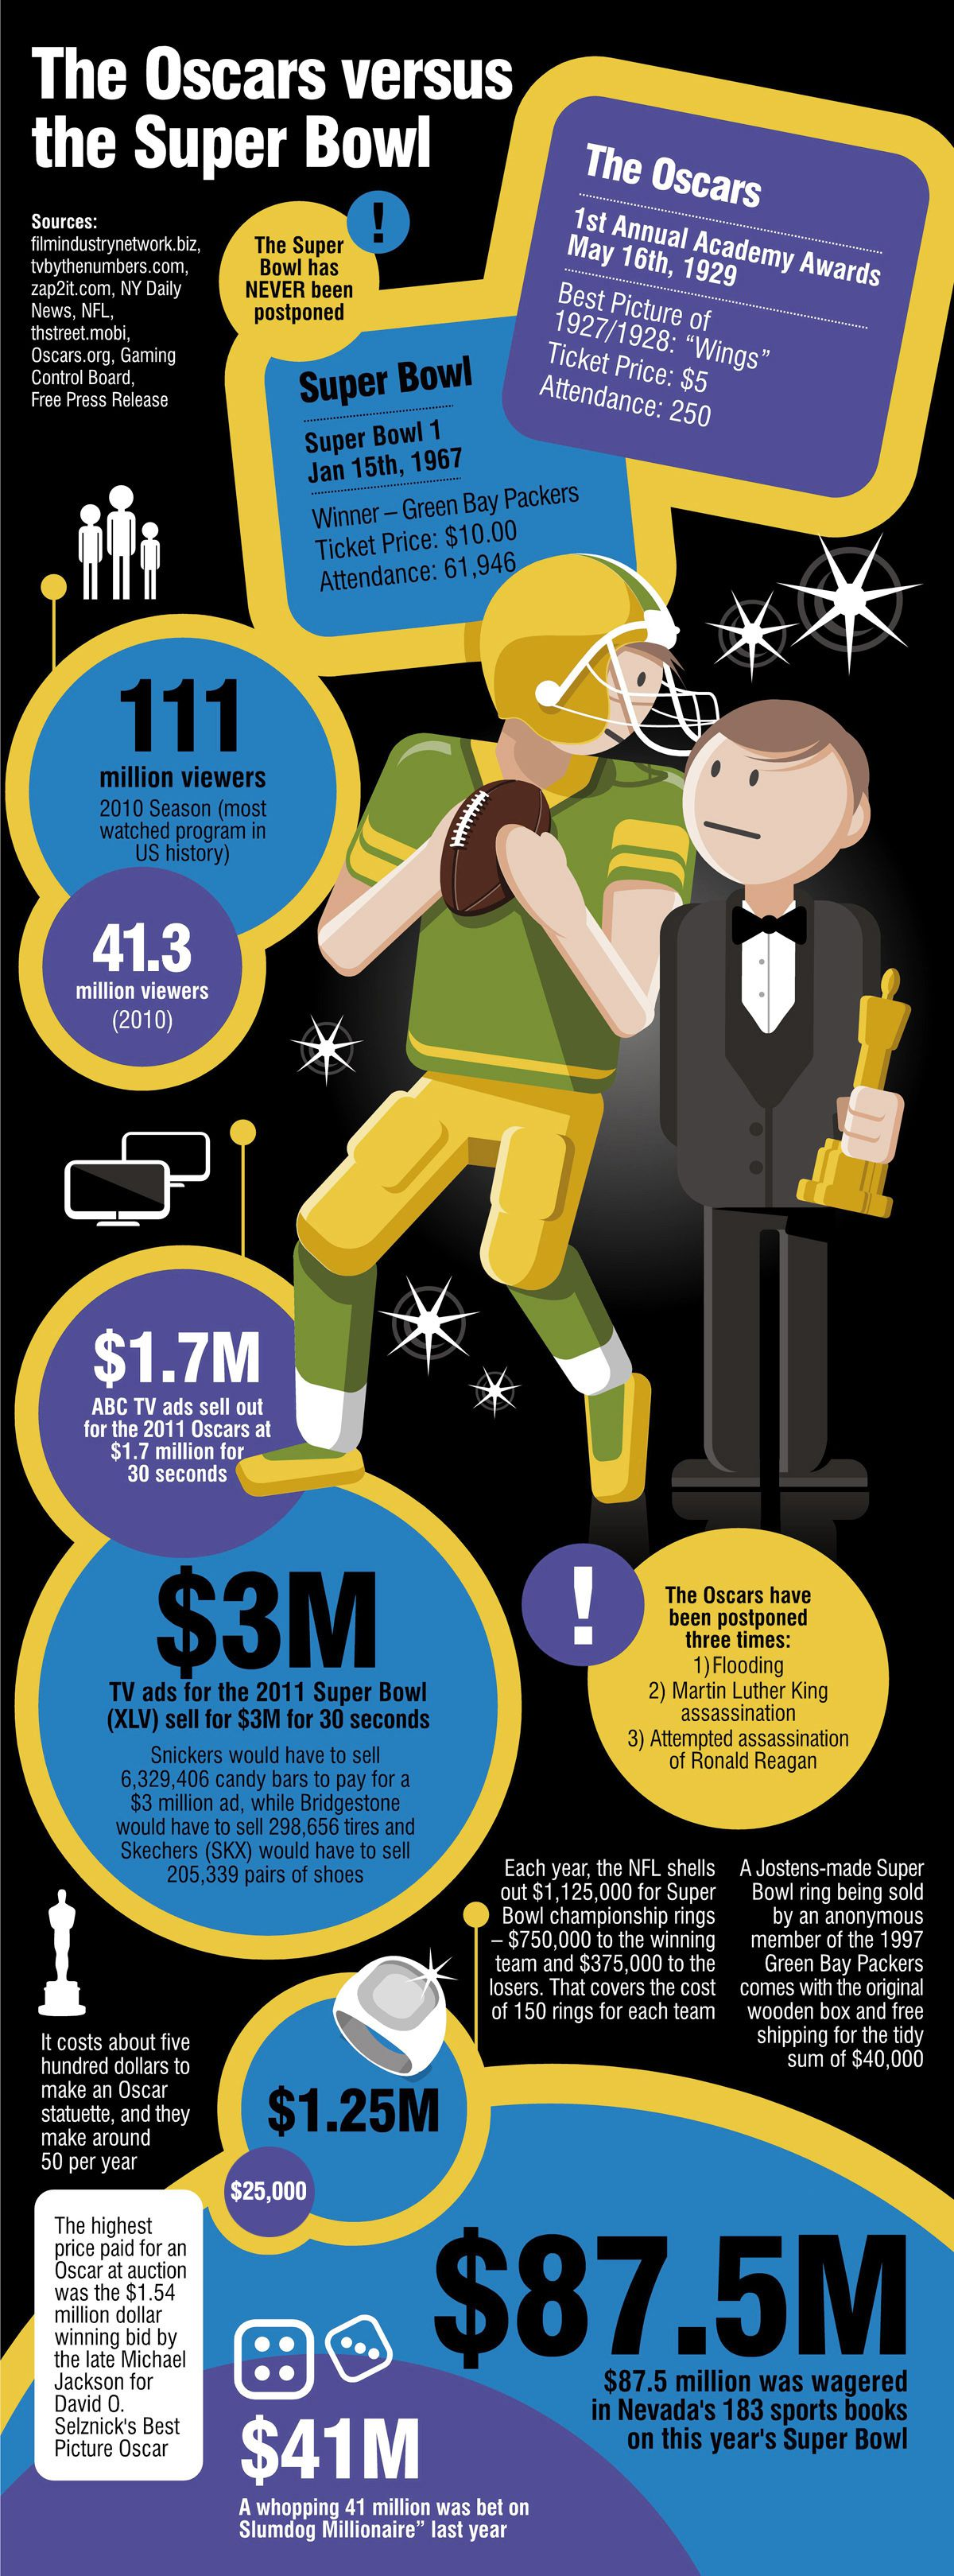 The Oscars versus The Super Bowl